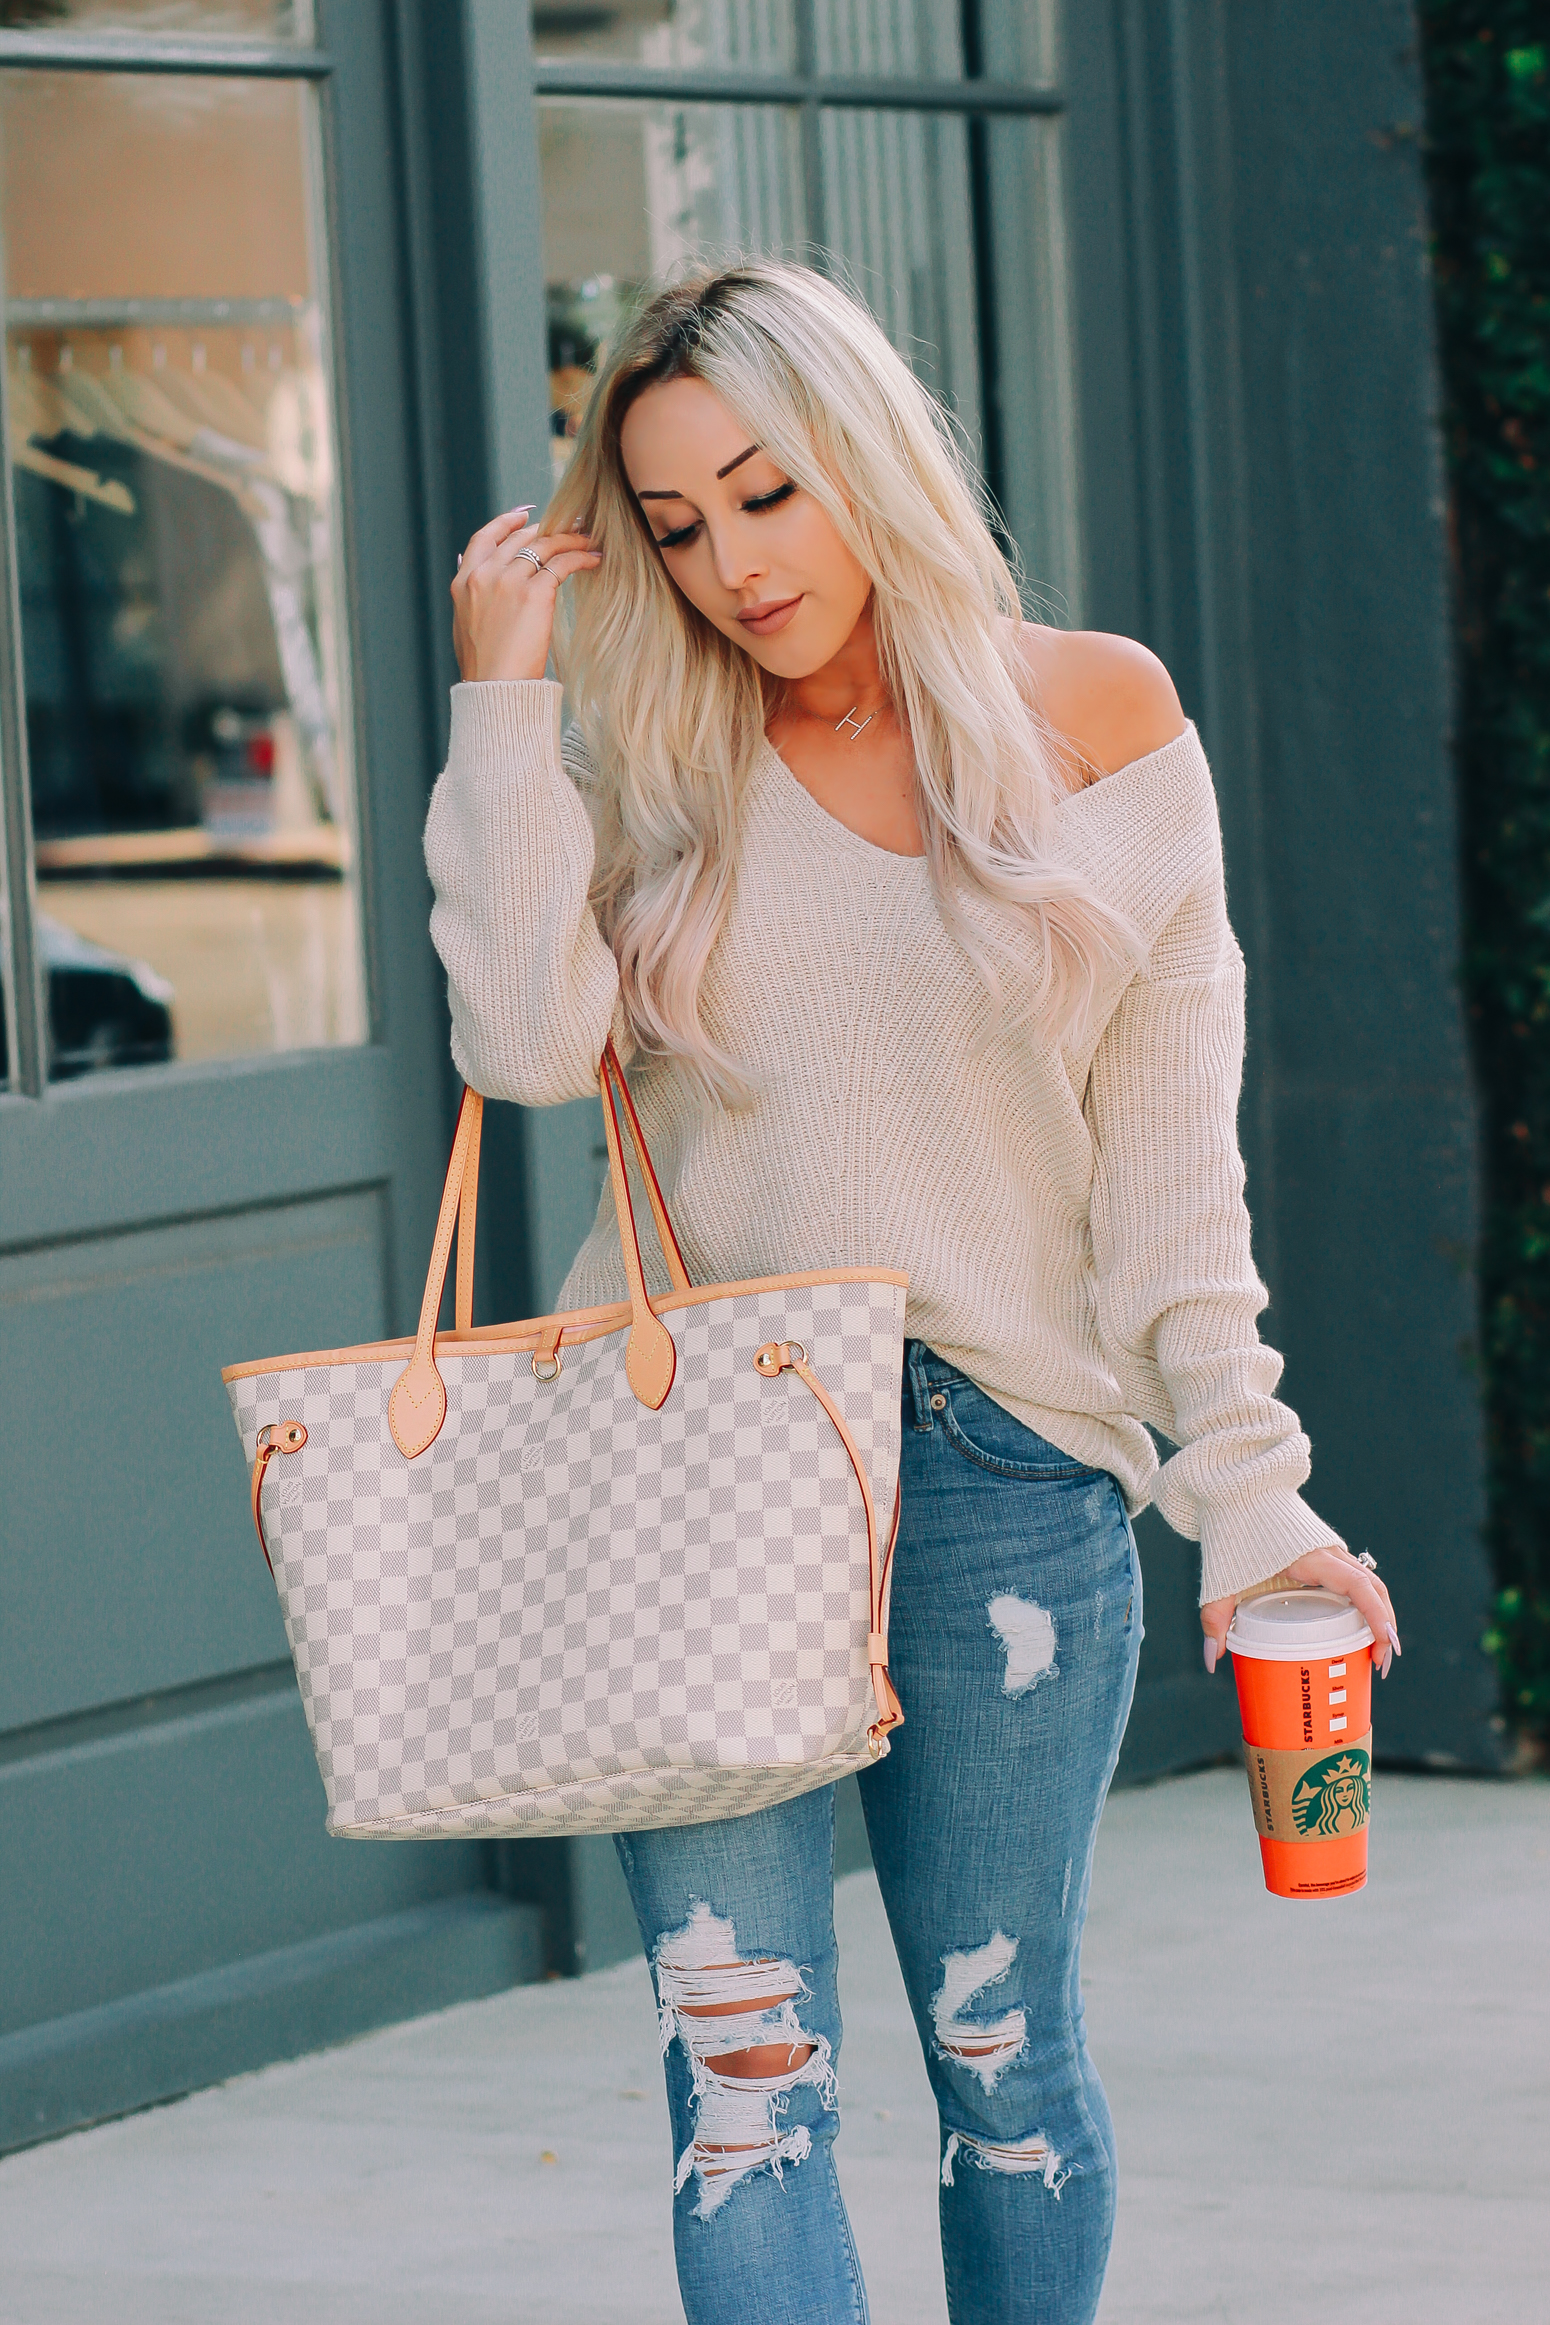 Blondie in the City | Favorite Nordstrom Sweater | Louis Vuitton Neverfull MM | Nude Louboutins